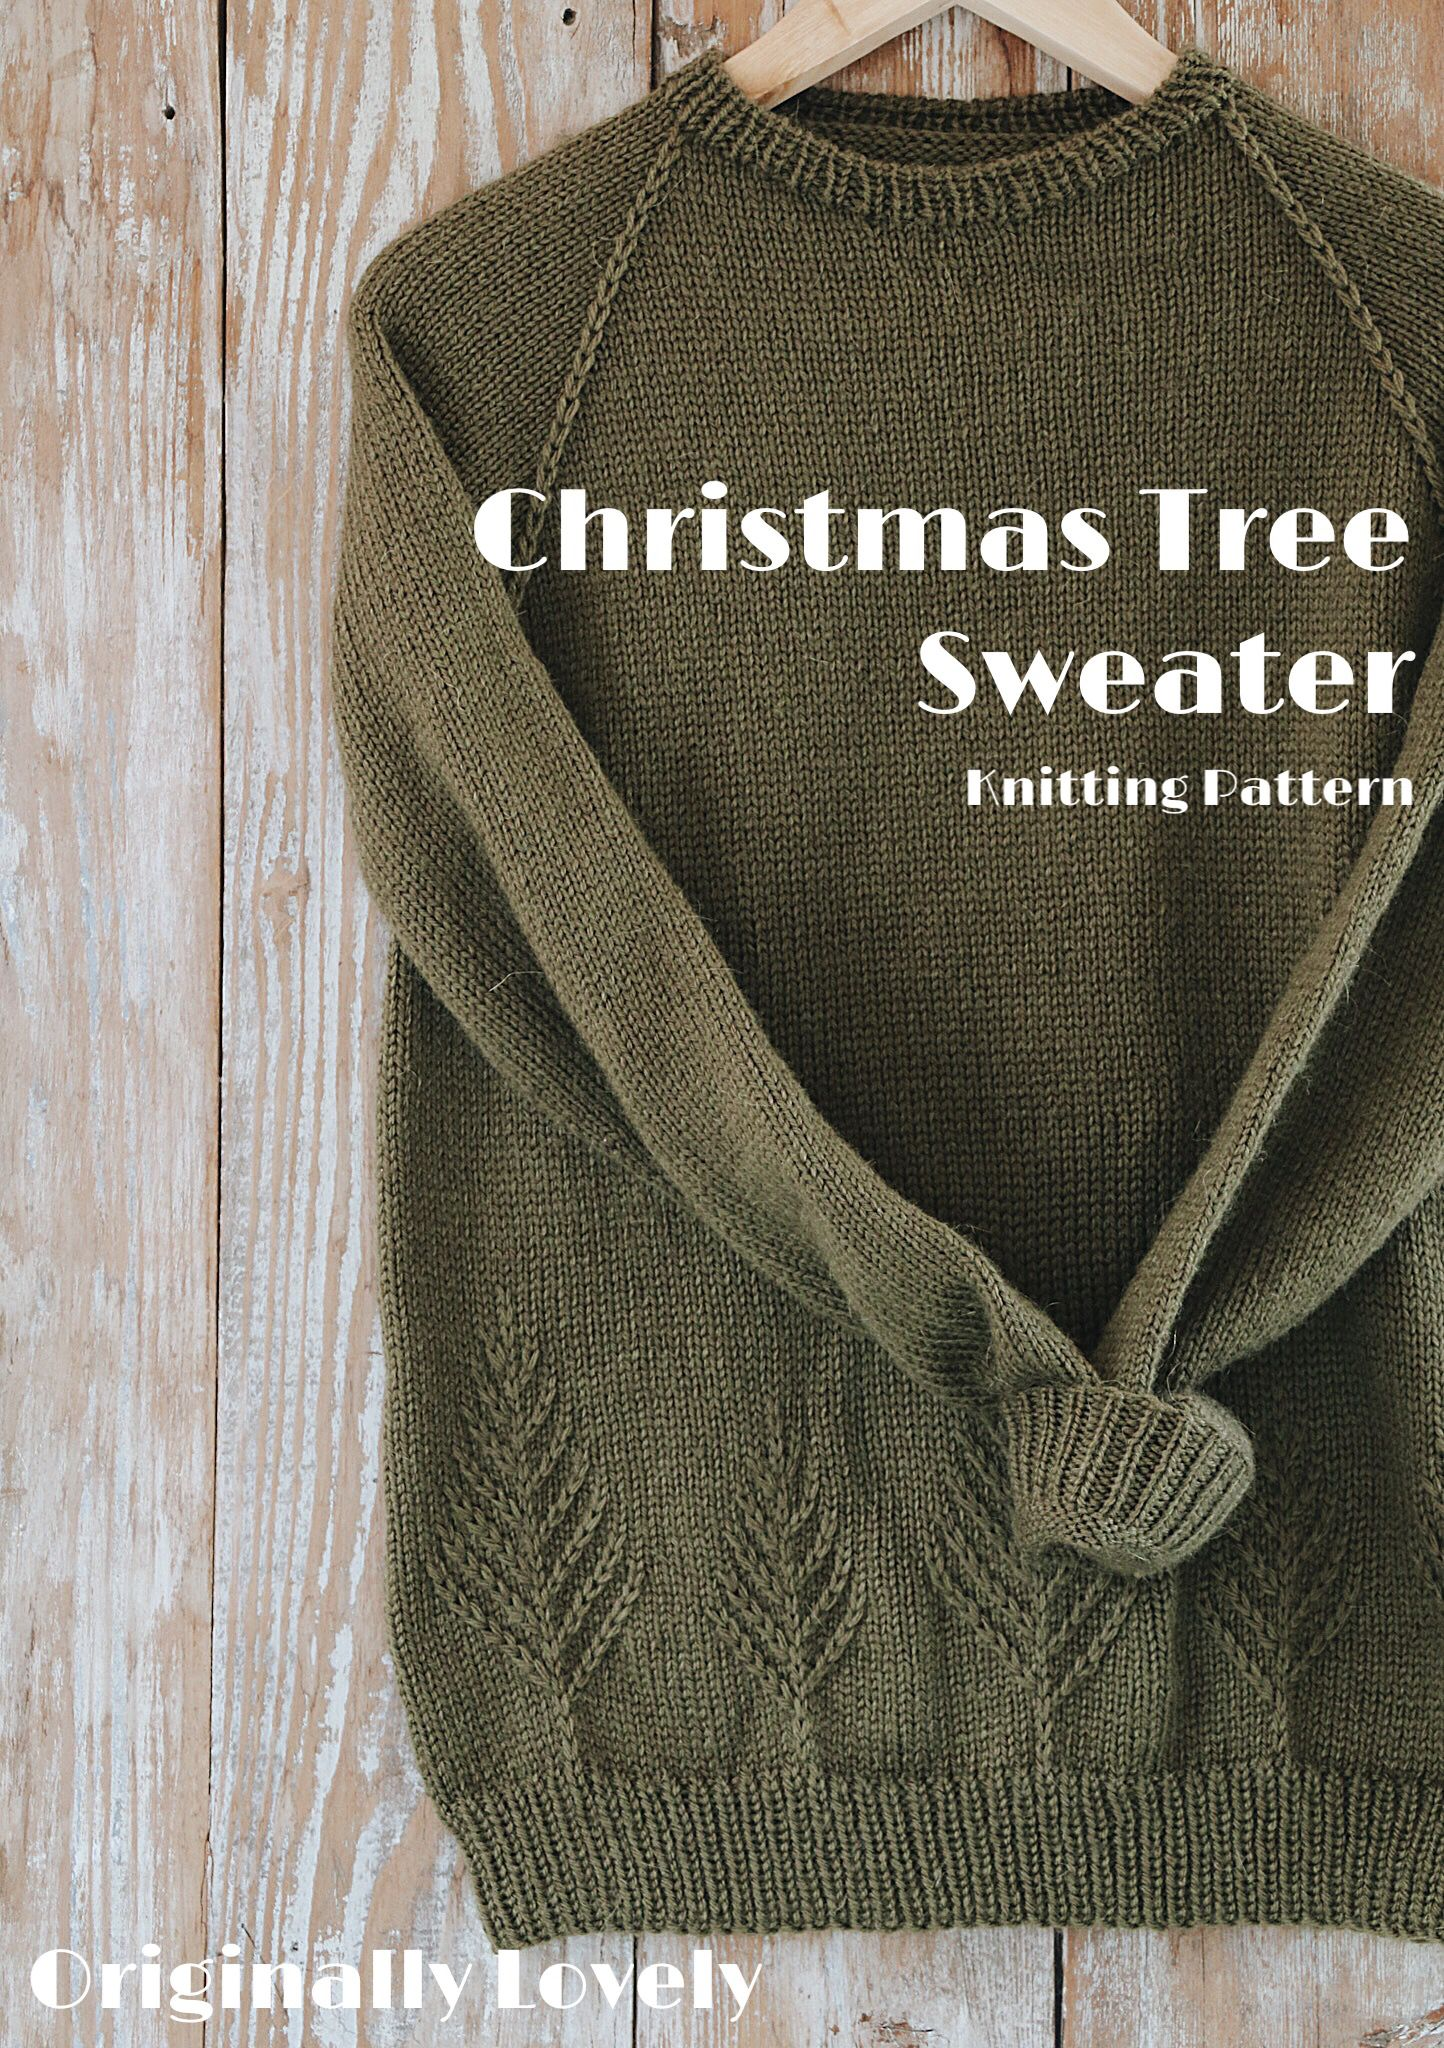 Christmas Tree Sweater Knitting Pattern | Originally Lovely #knittinginspiration